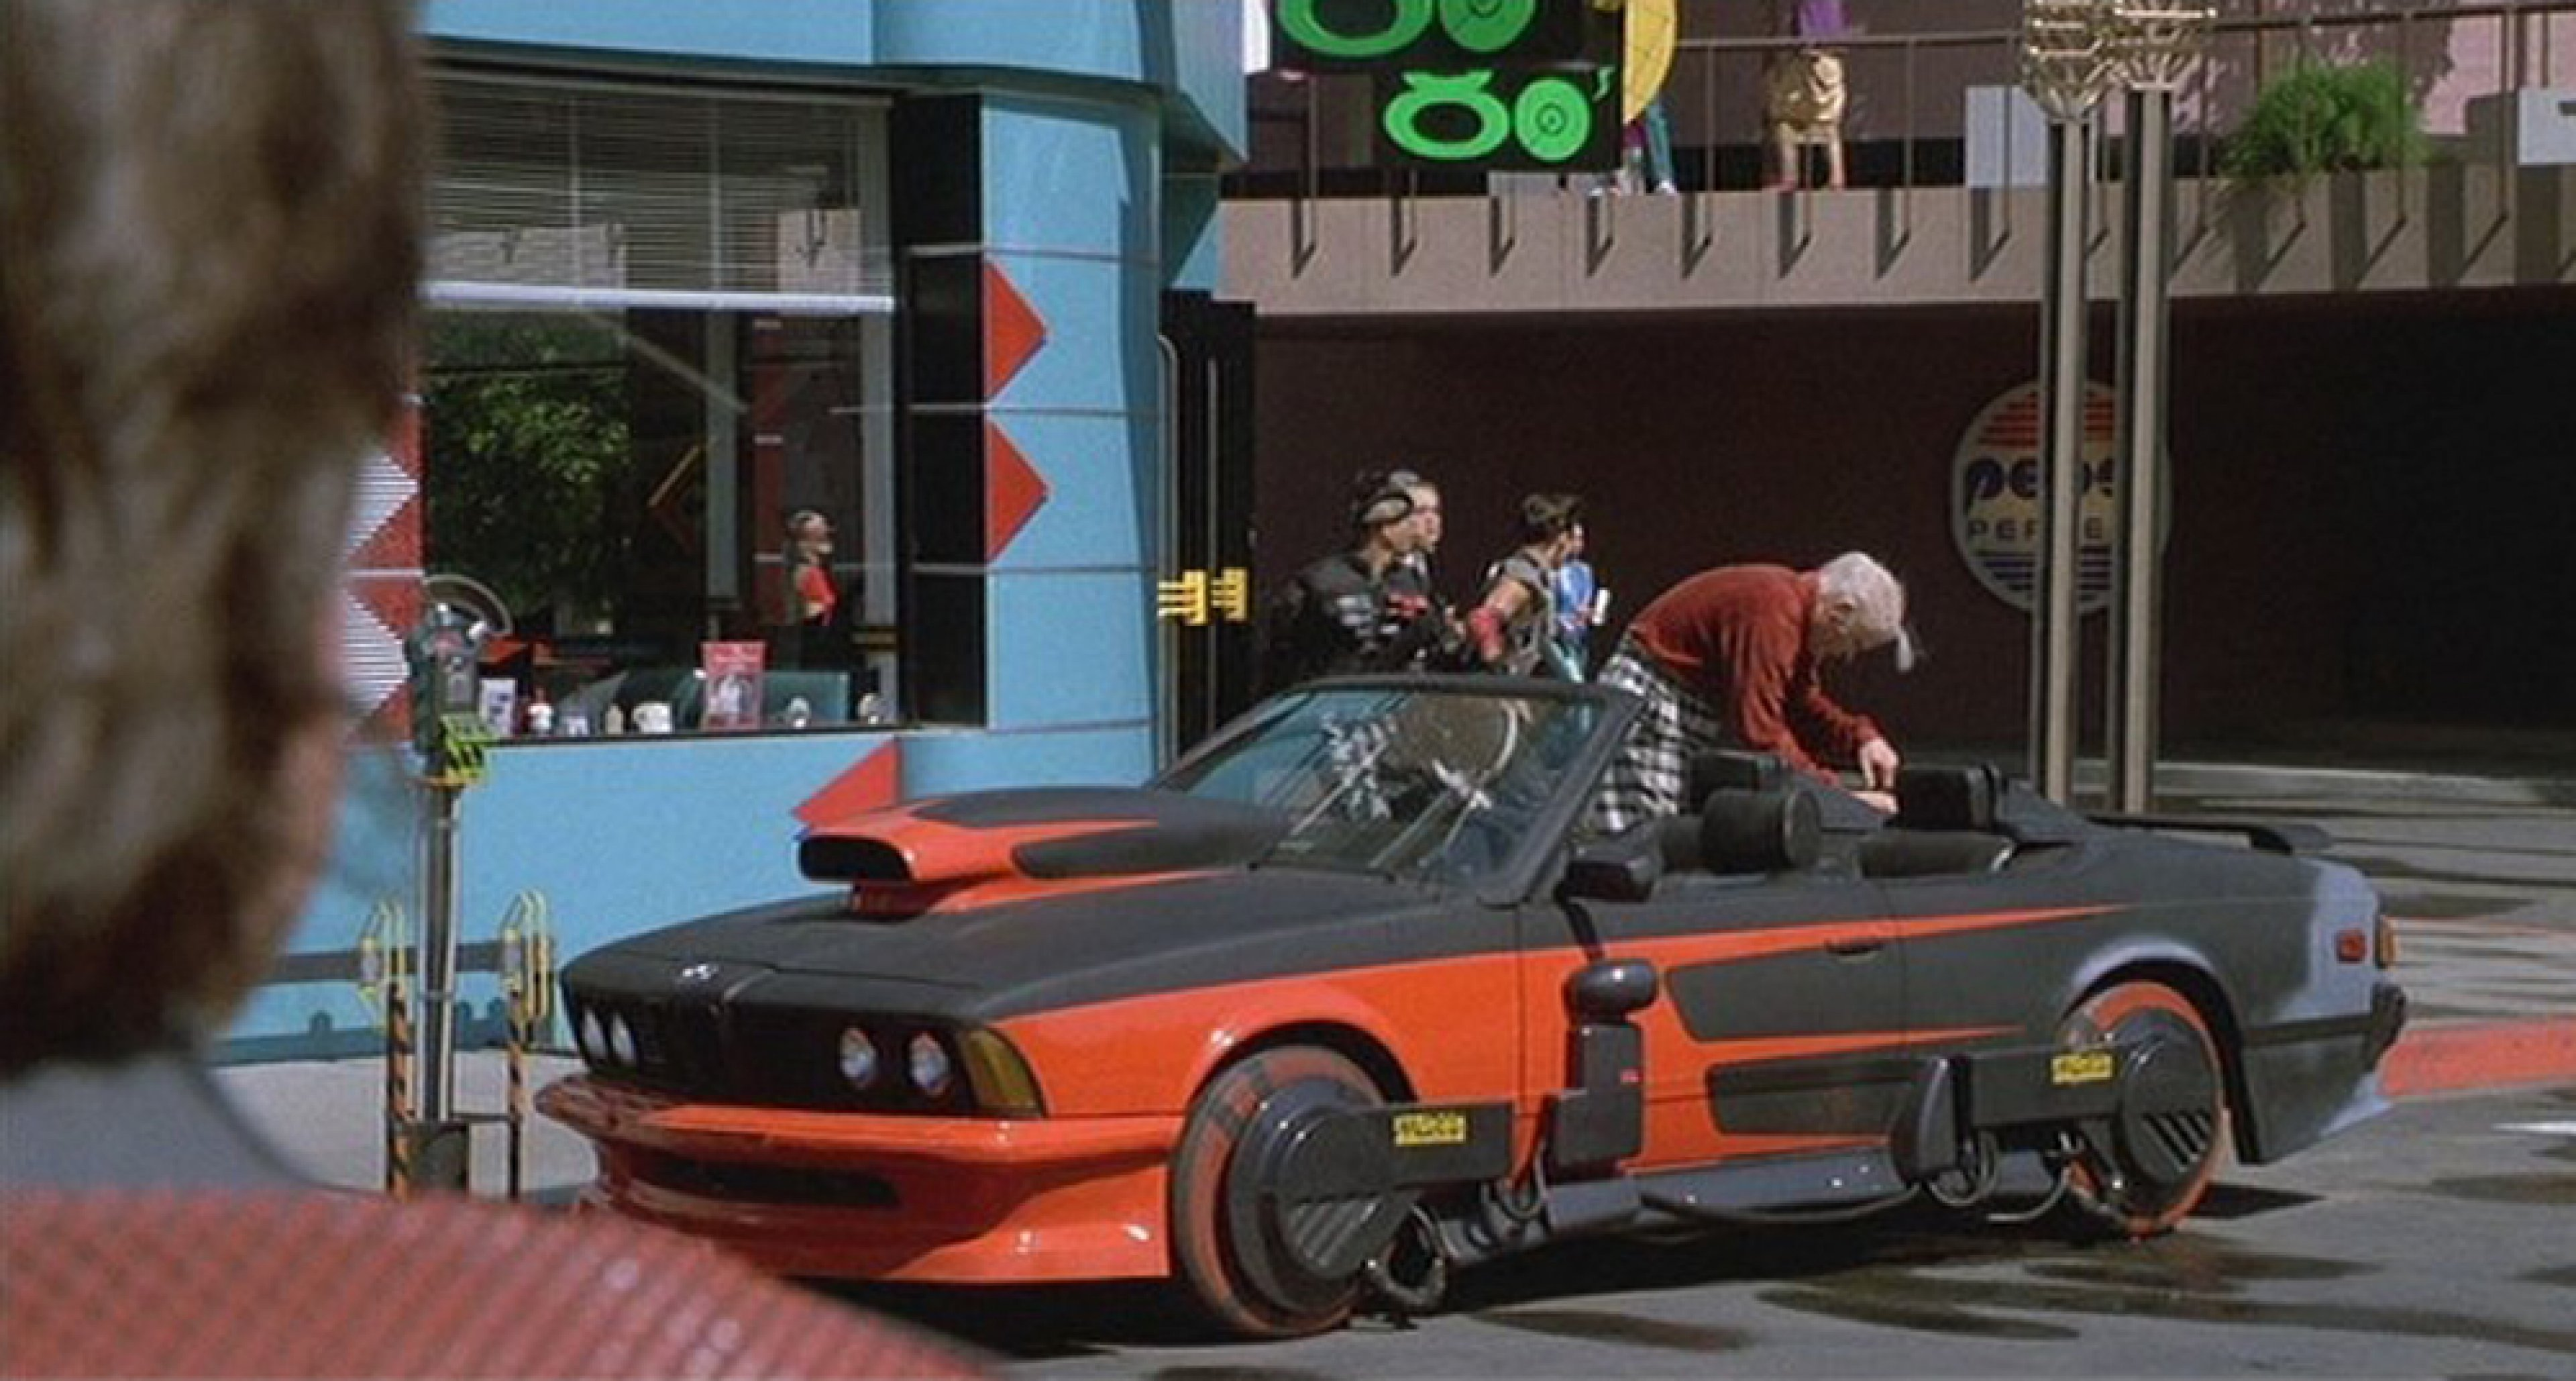 We almost forgot about this BMW from 'Back to the Future